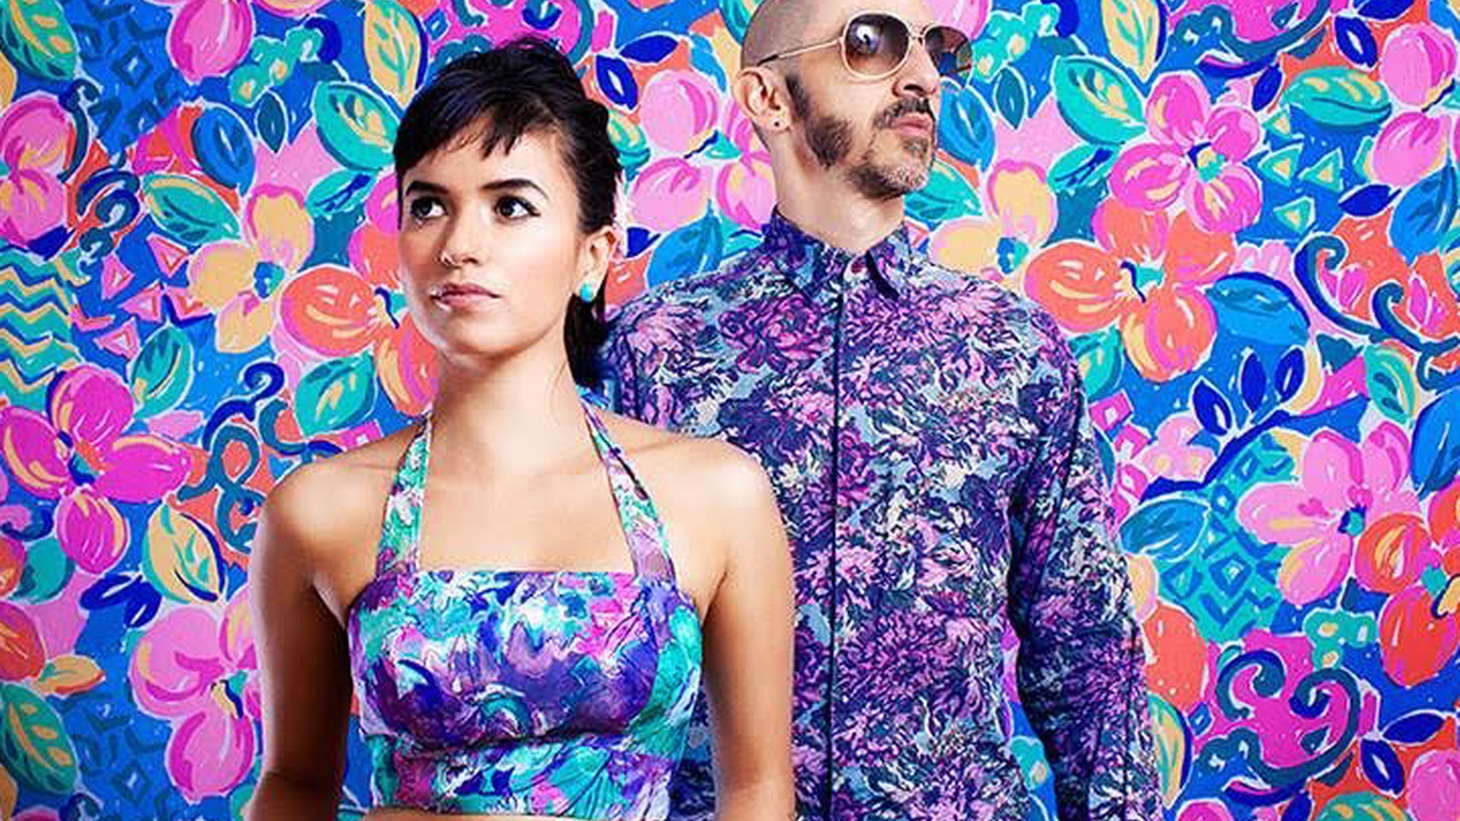 For today's LAMC preview, the dulcet tones ofColombian pop duo Pedrina y Rio lend a colorful presence when teamed with classic Latin elements.